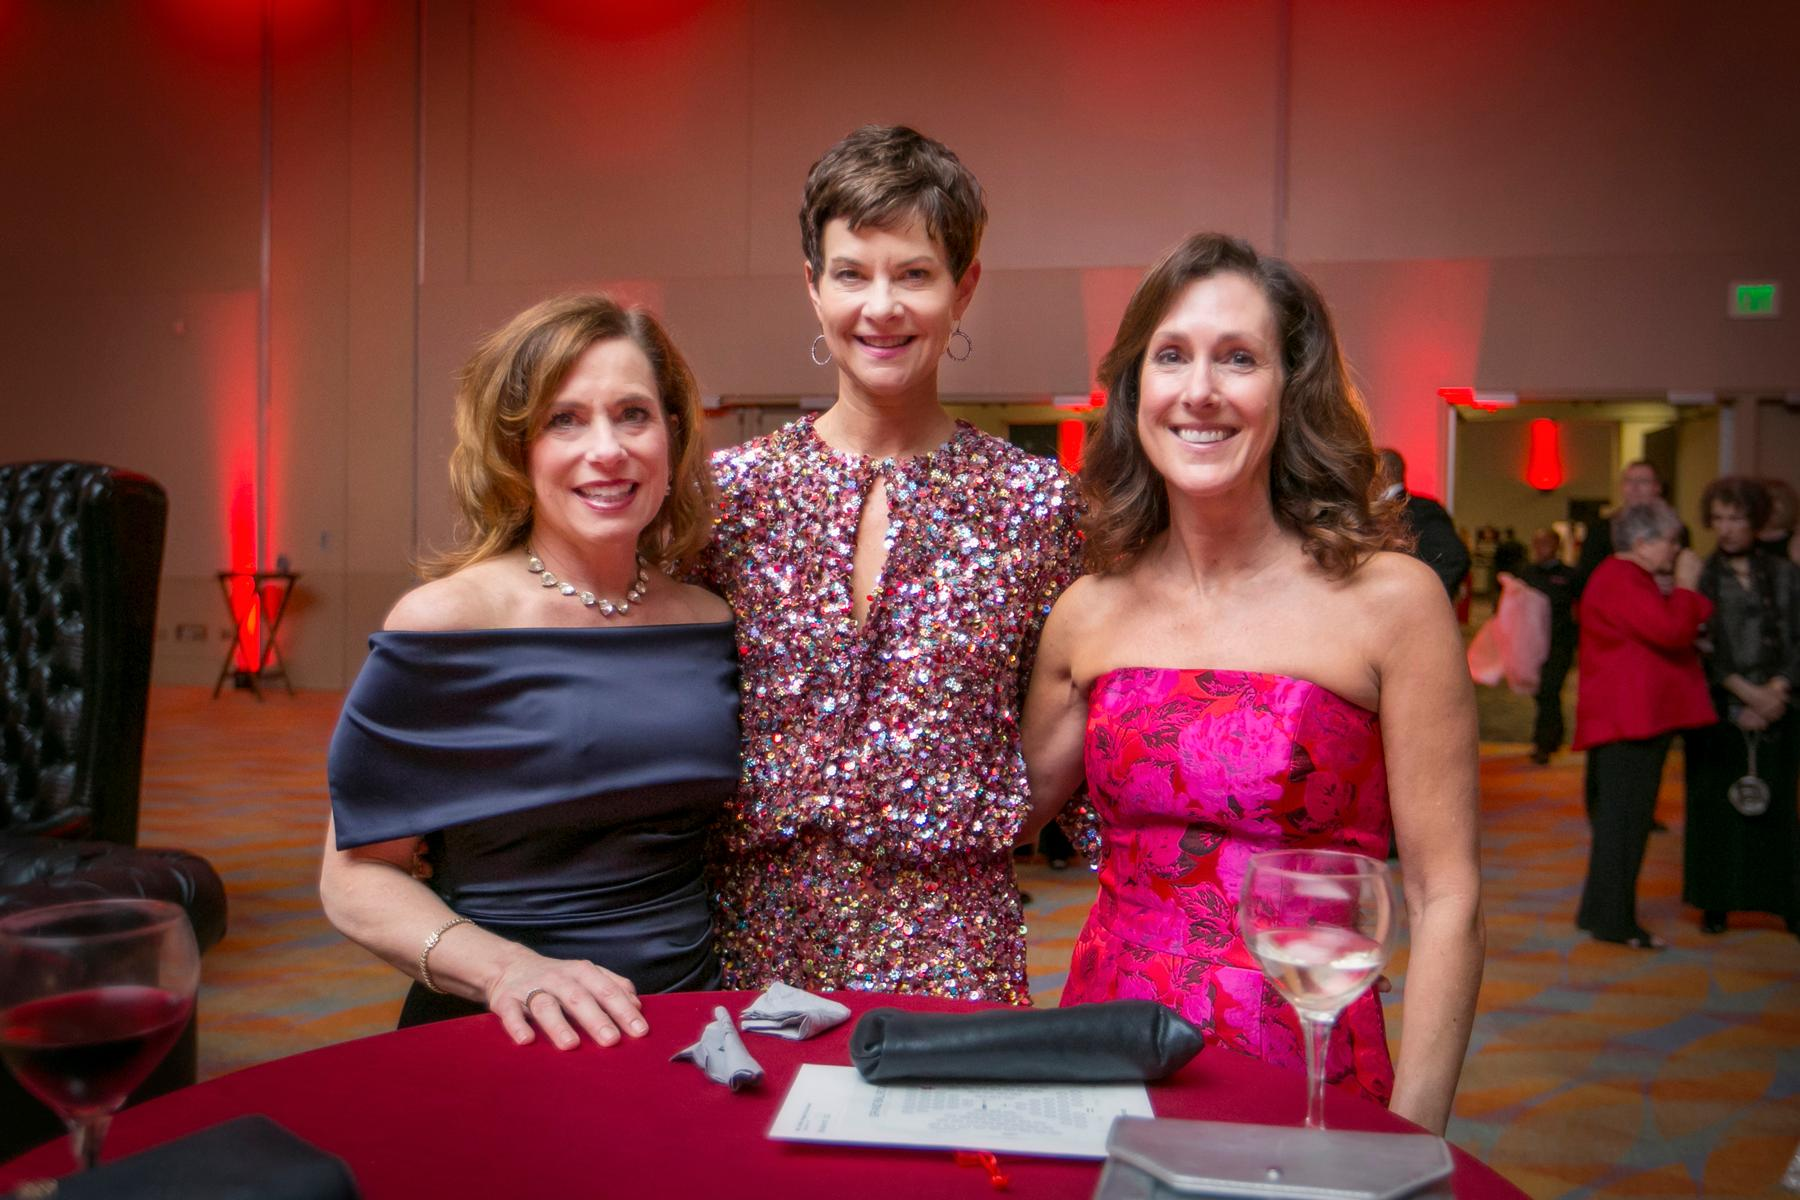 Donna Schnicke, Jennifer Homer, and Ceci David / Image: Mike Bresnen Photography